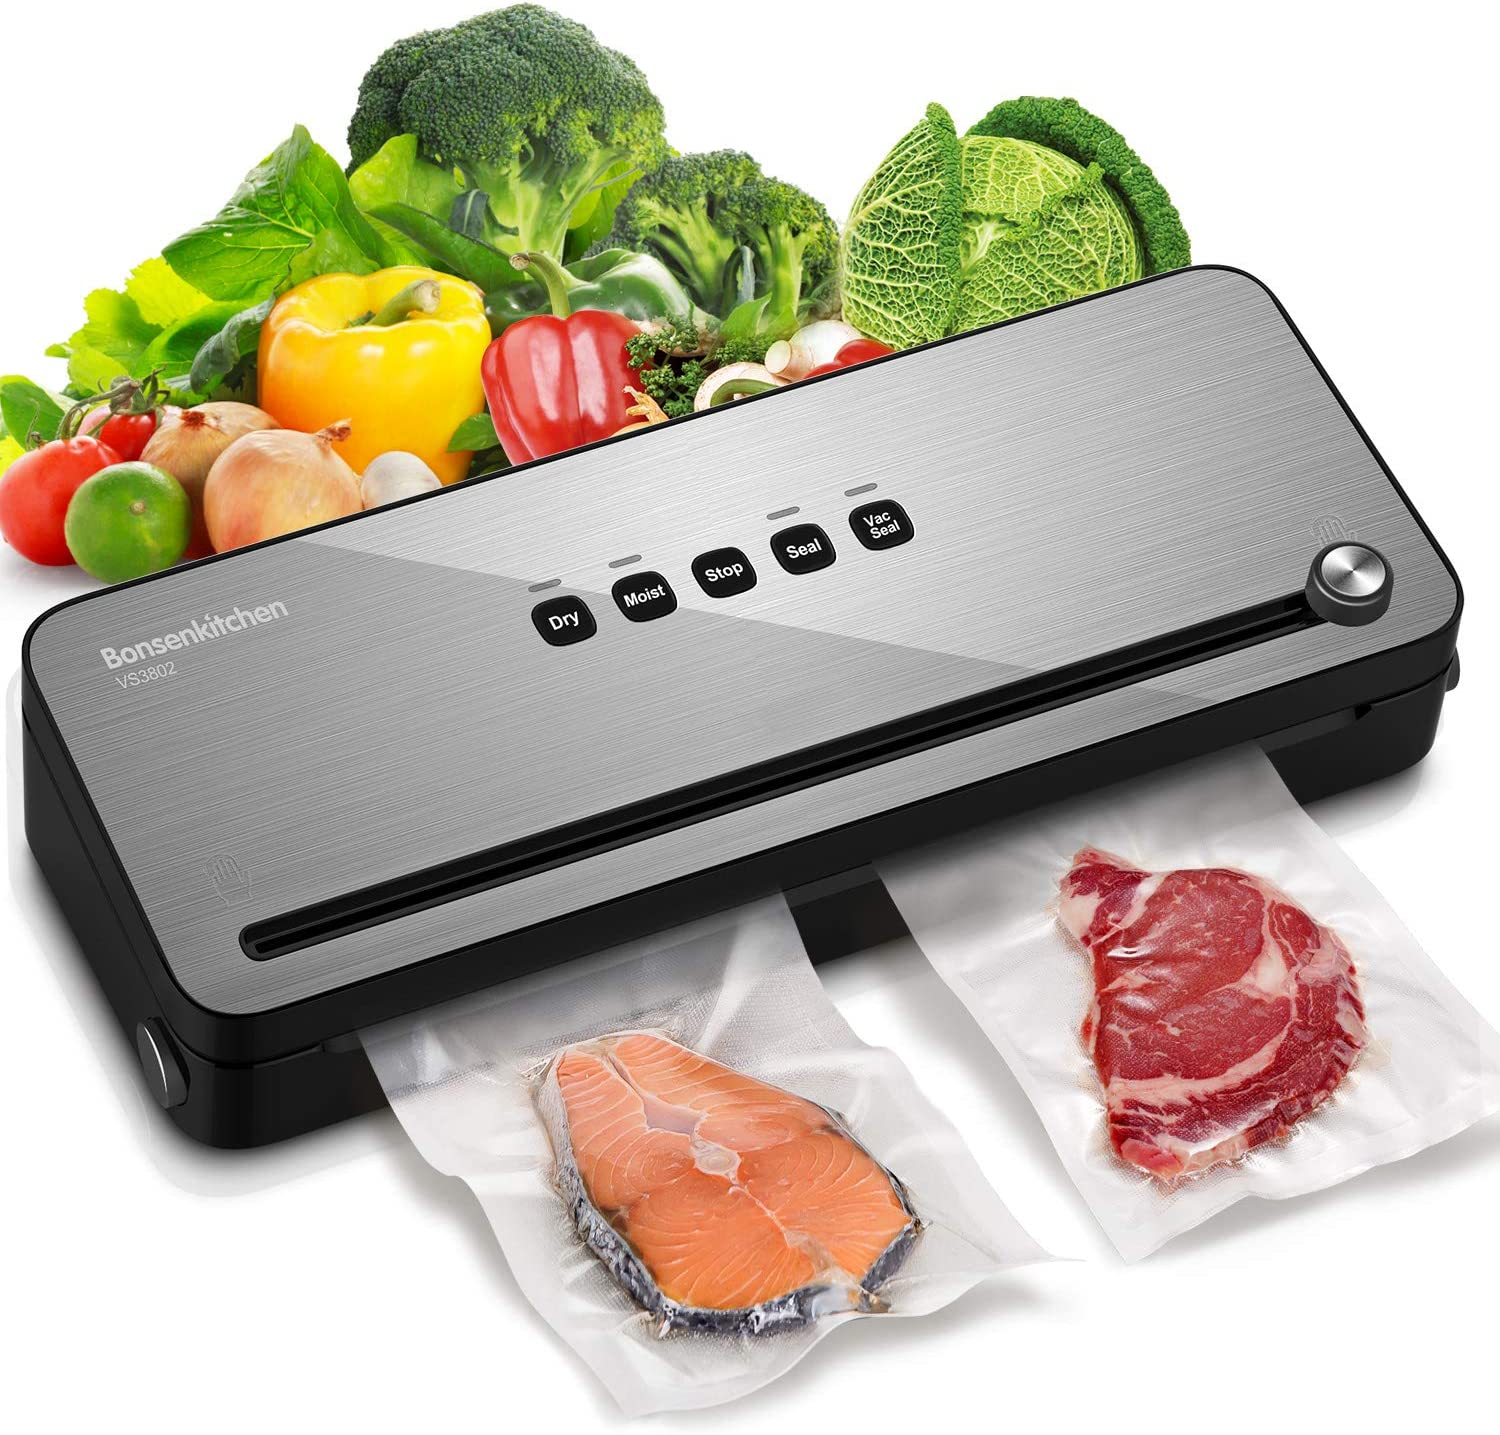 Bonsenkitchen Vacuum Sealer Machine, Automatic Vacuum Air Sealing System with Dry & Moist Food Modes and One Roll Starter Kit Vacuum Sealing Bags For Food Preservation and Sous Vide (VS3802-Black)